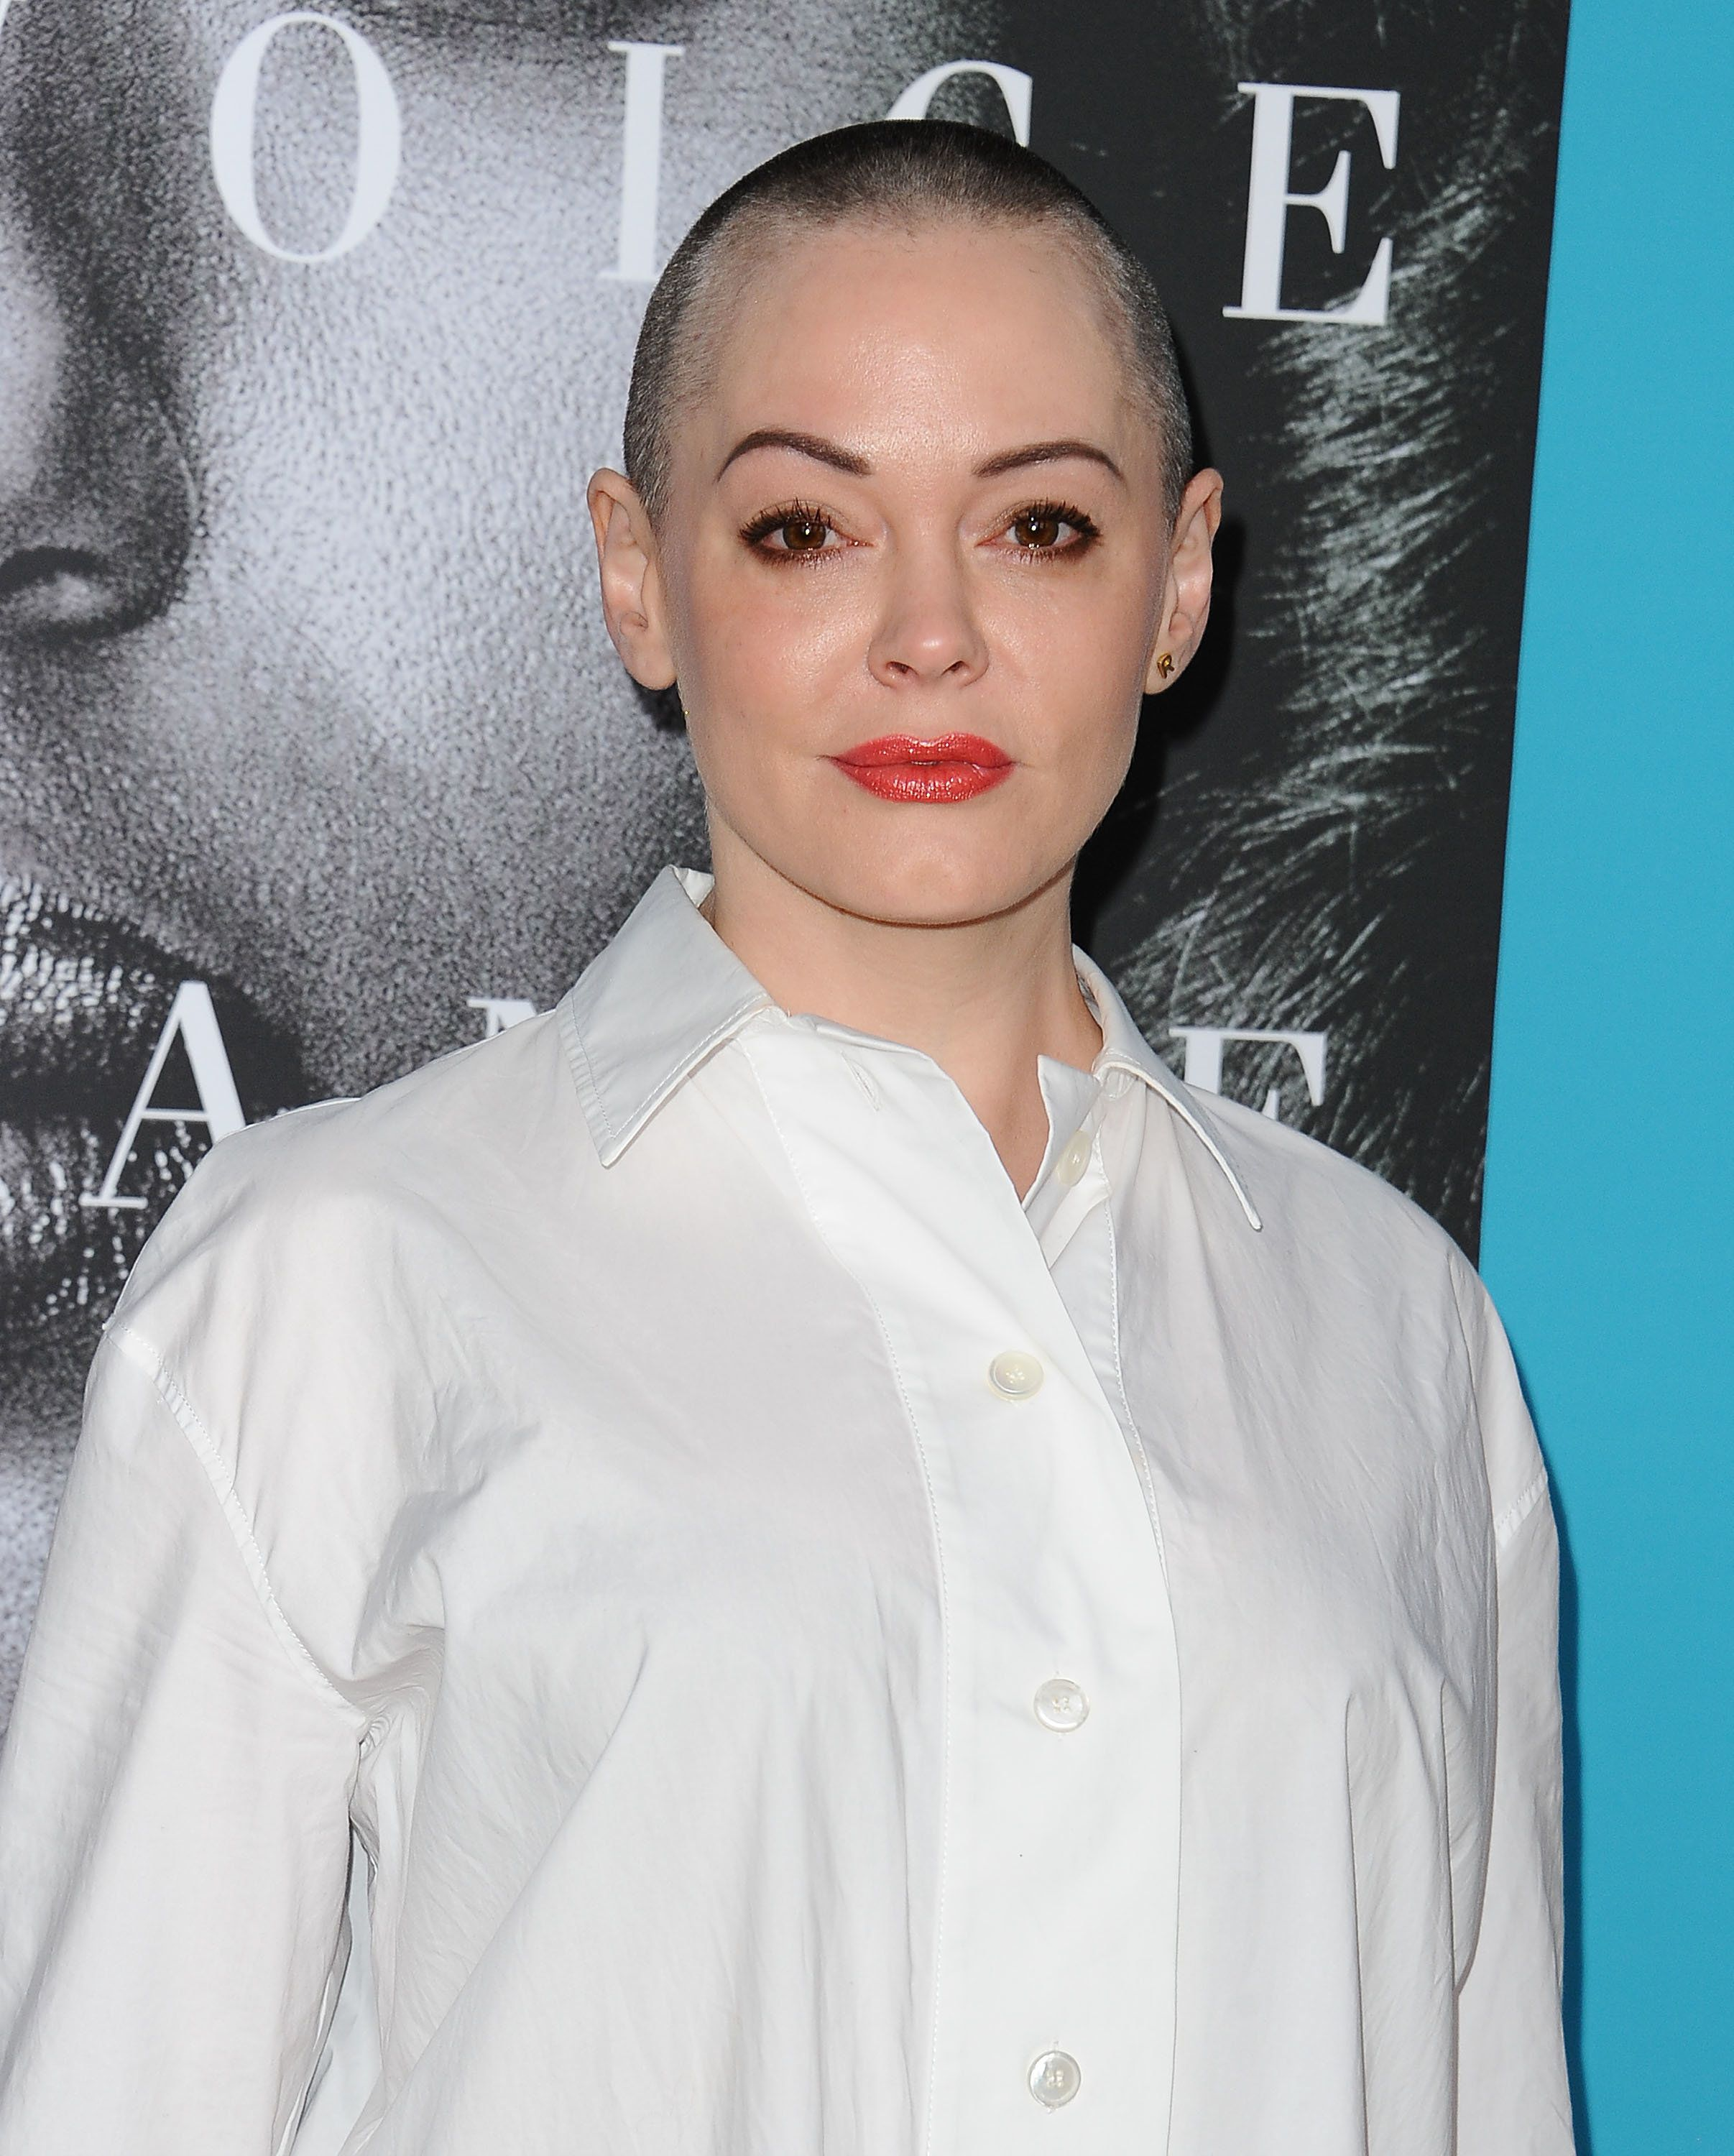 Rose McGowan's Temporary Twitter Lock-Out Inspires #WomenBoycottTwitter Movement